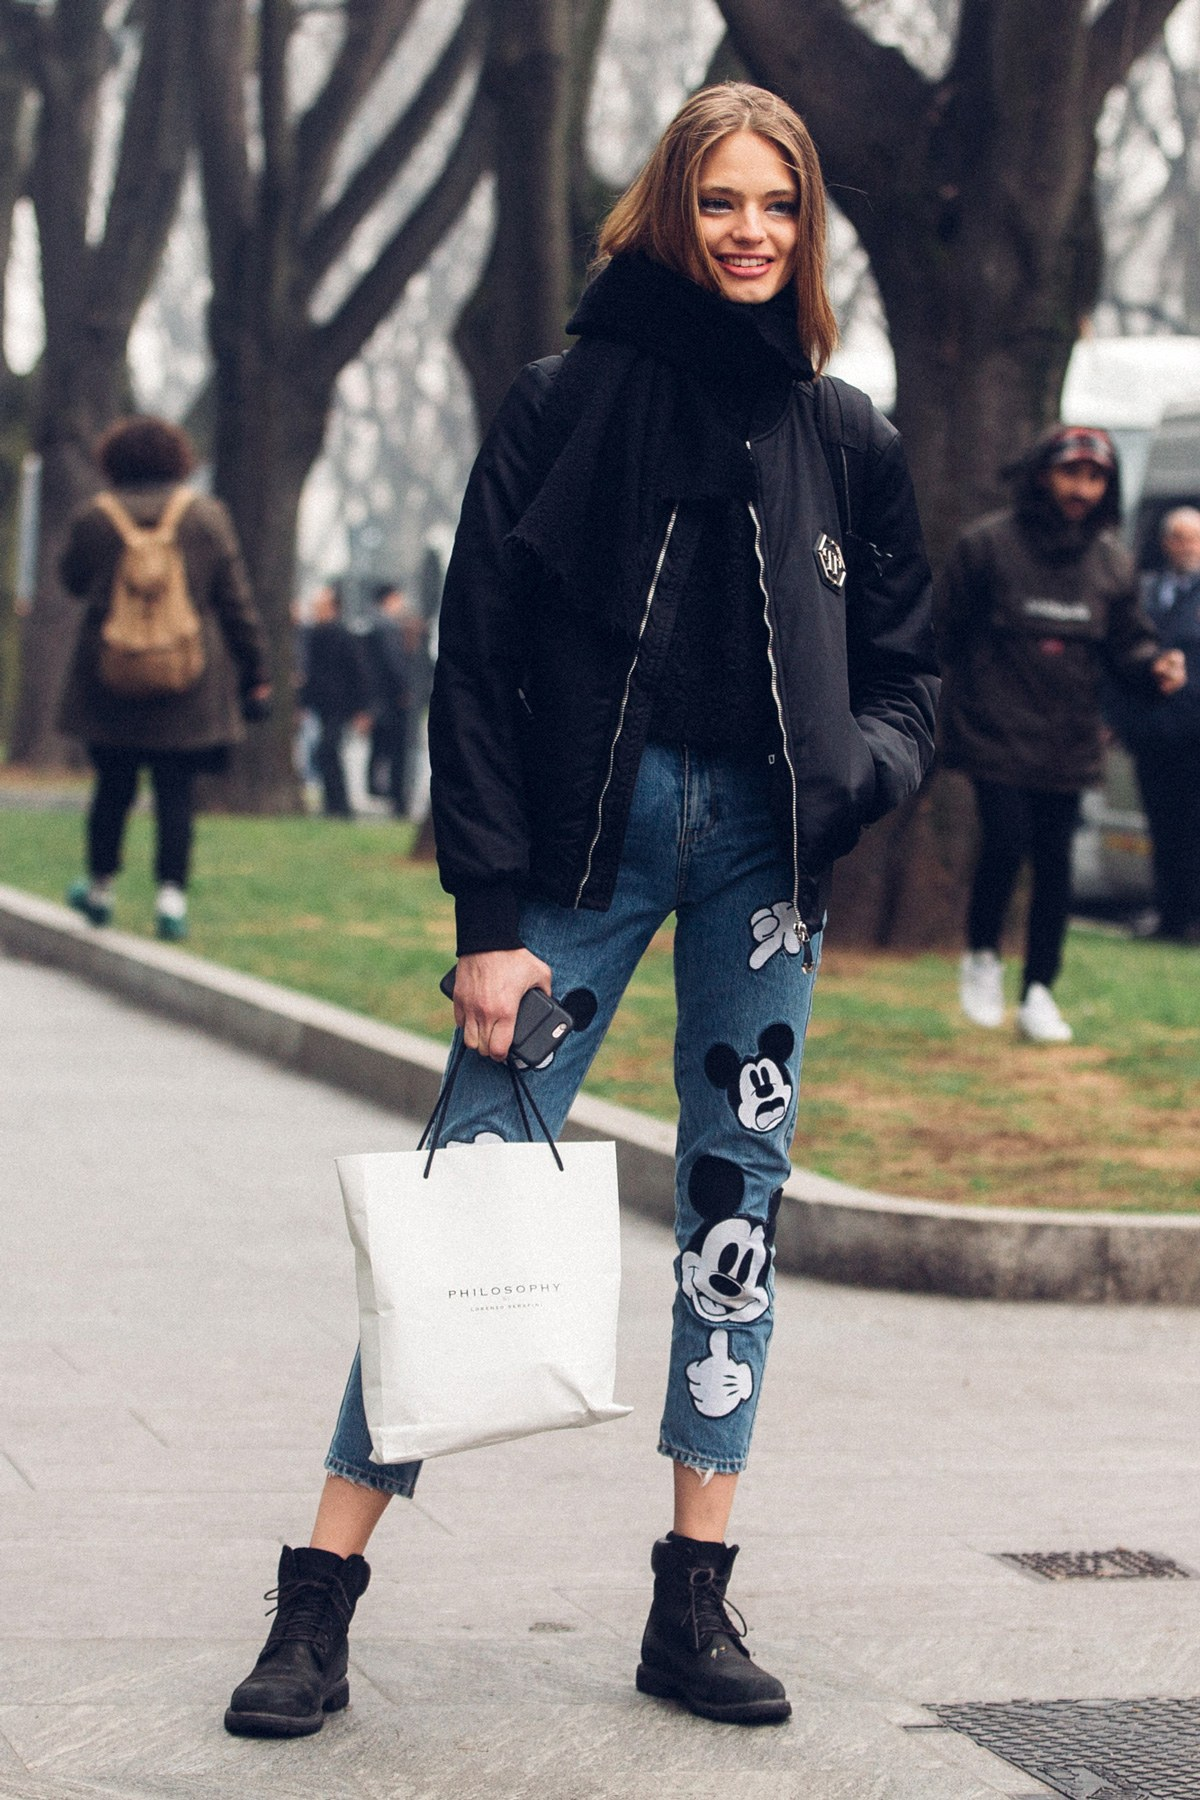 pA model wearing Mickey Mouse jeans during Fashion Week.p